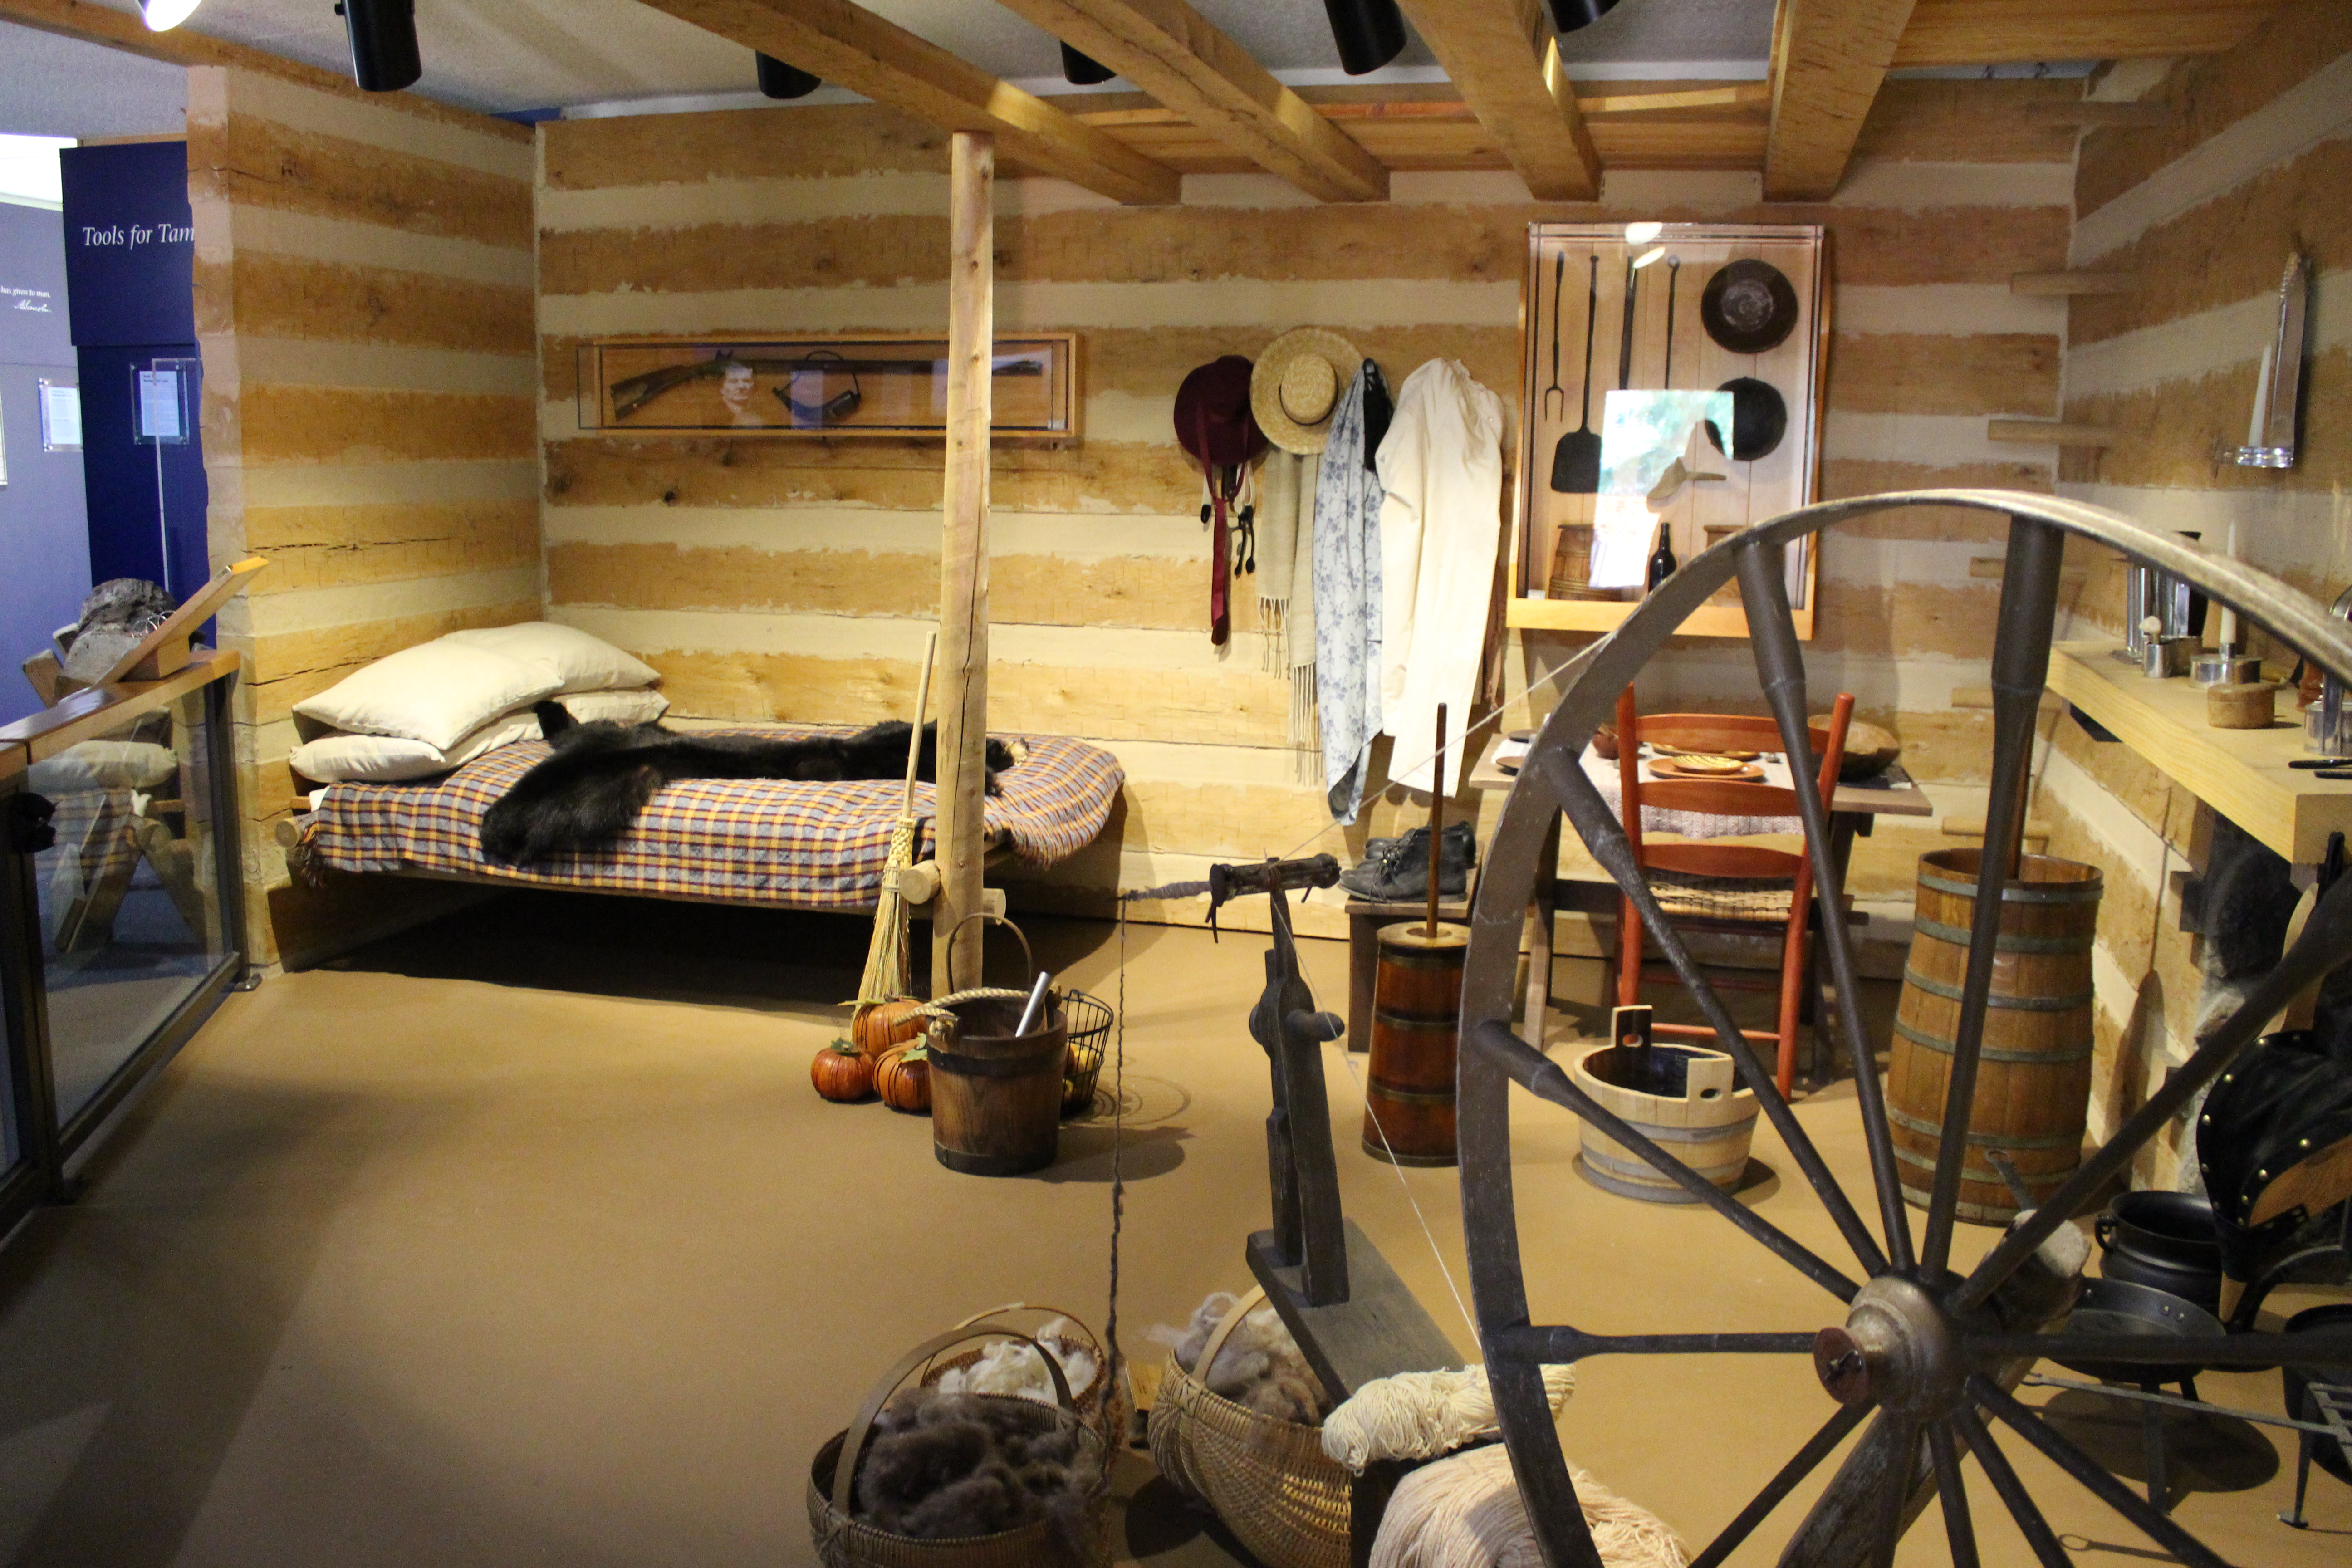 Superb img of Inside the log cabin with #9F7A2C color and 5184x3456 pixels